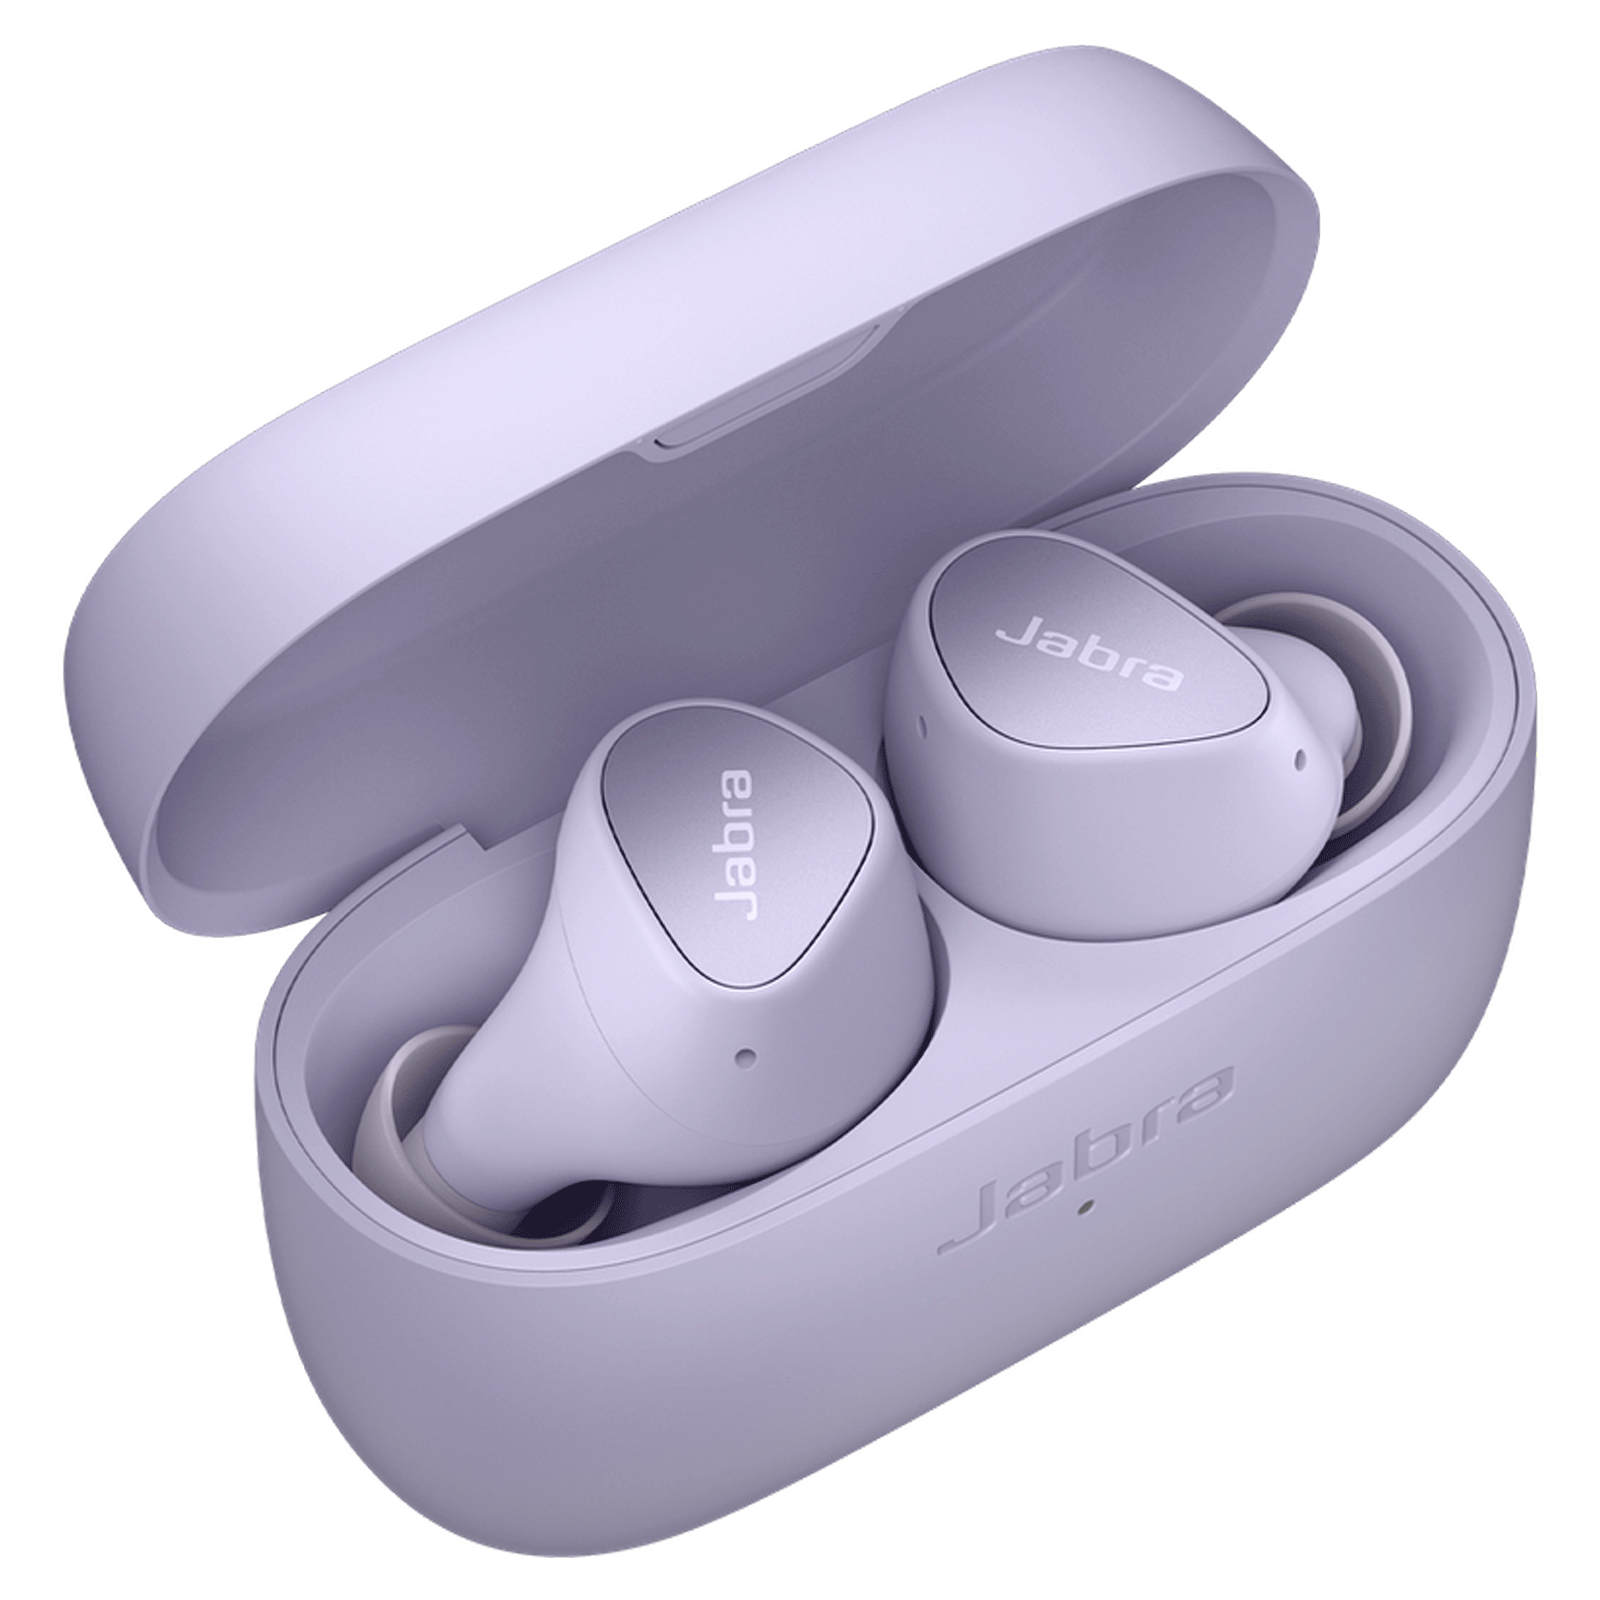 Jabra Elite 3 In-Ear Passive Noise Cancellation Truly Wireless Earbuds with Mic (Bluetooth 5.2, Qualcomm aptX, Lilac)_1